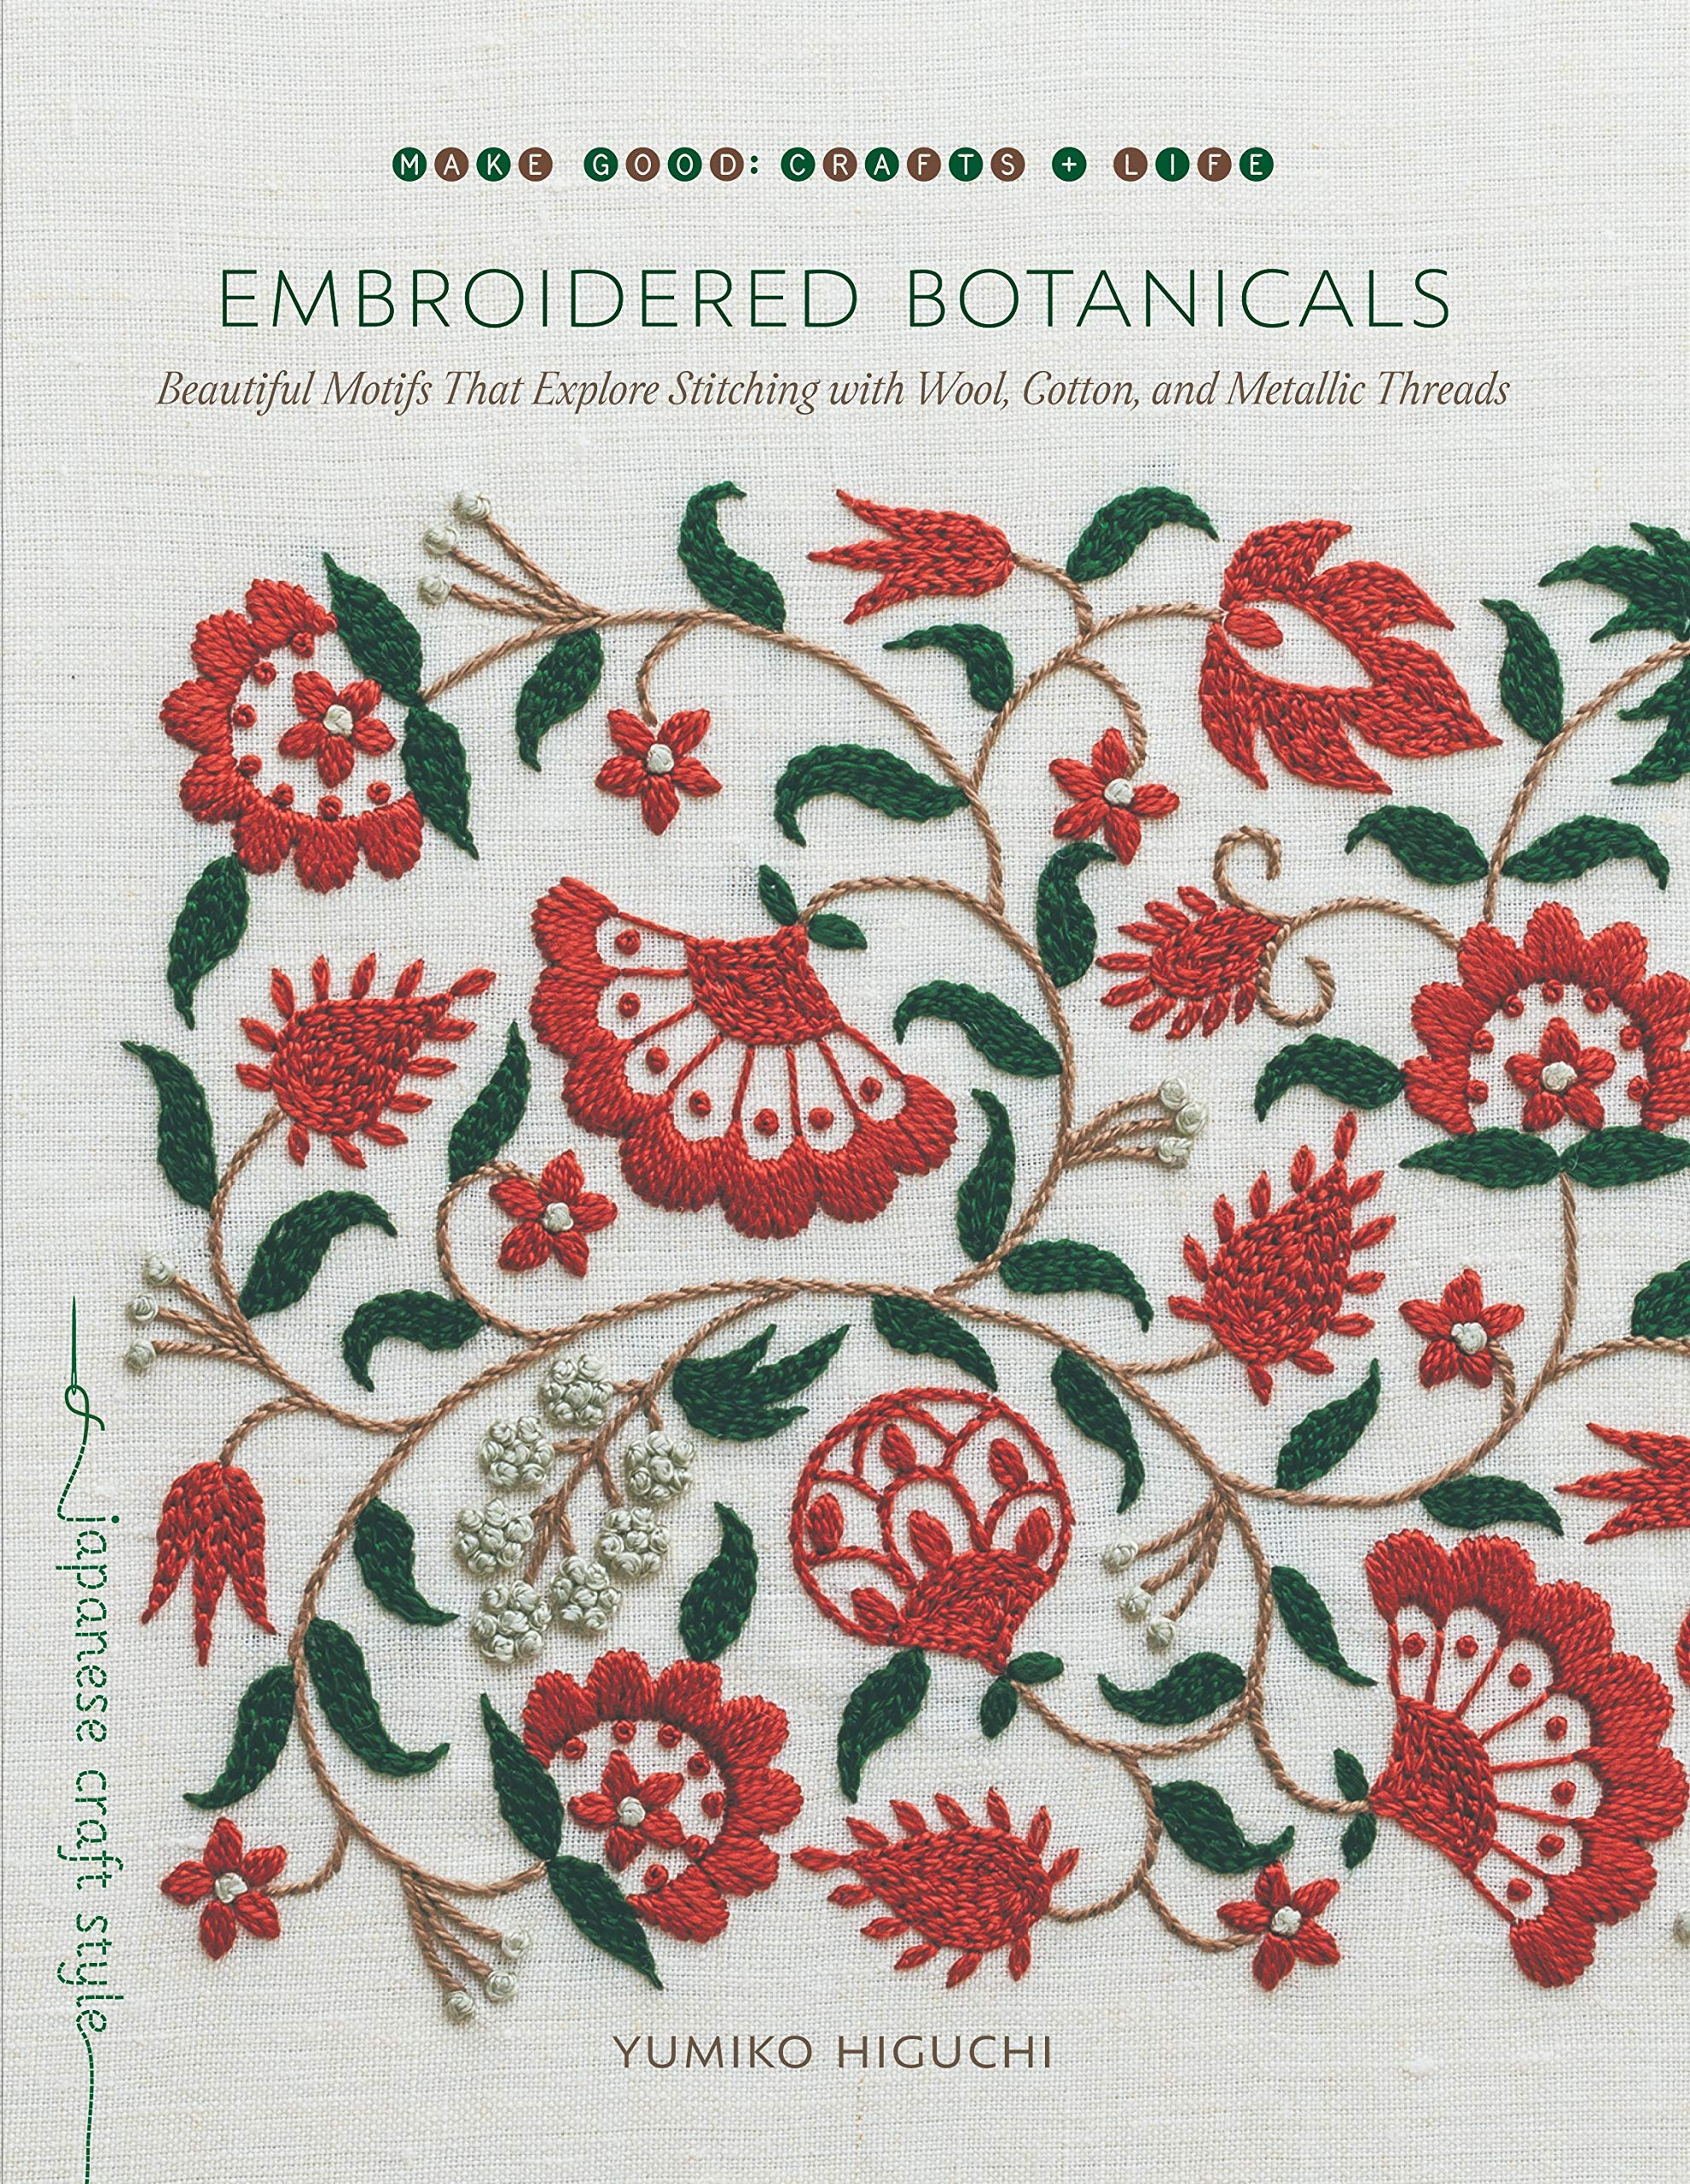 Embroidered Botanicals: Beautiful Motifs That Explore Stitching with Wool, Cotton, and Metallic Threads (Make Good: Japanese Craft Style) by Roost Books